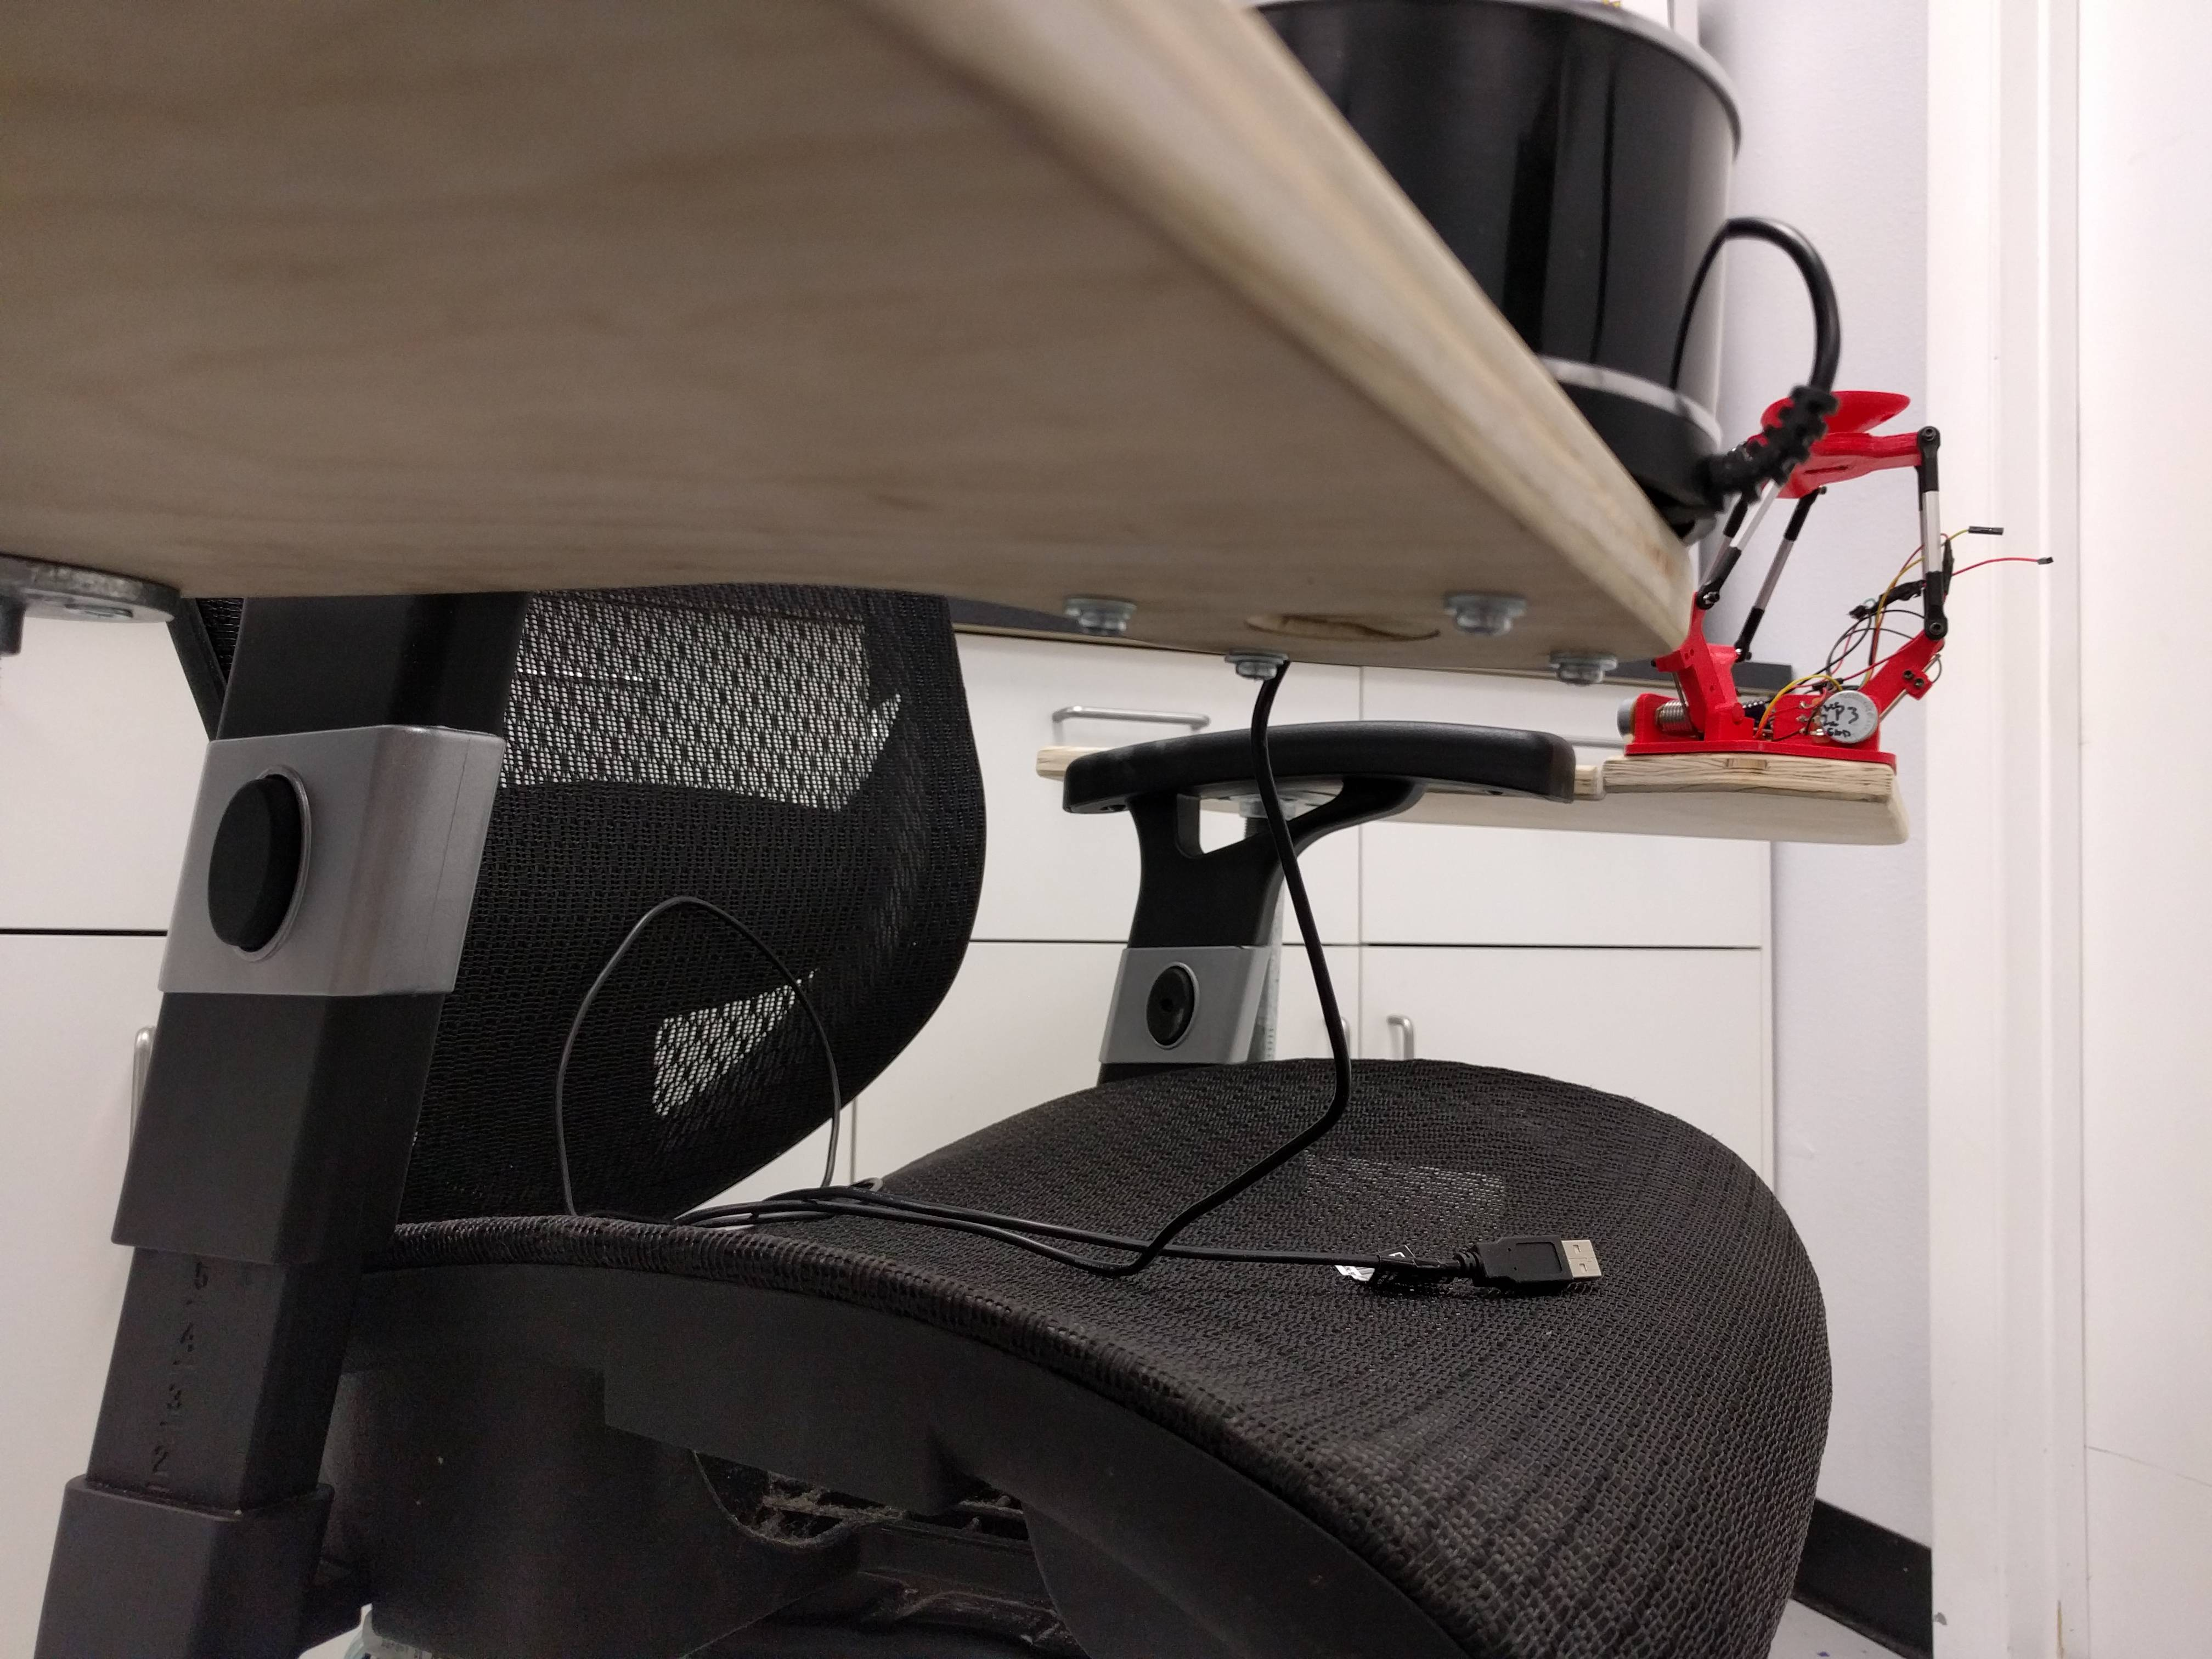 office chair joystick mount ergonomic with leg rest mounted desk and 13 nightmorning 3 bottom from side